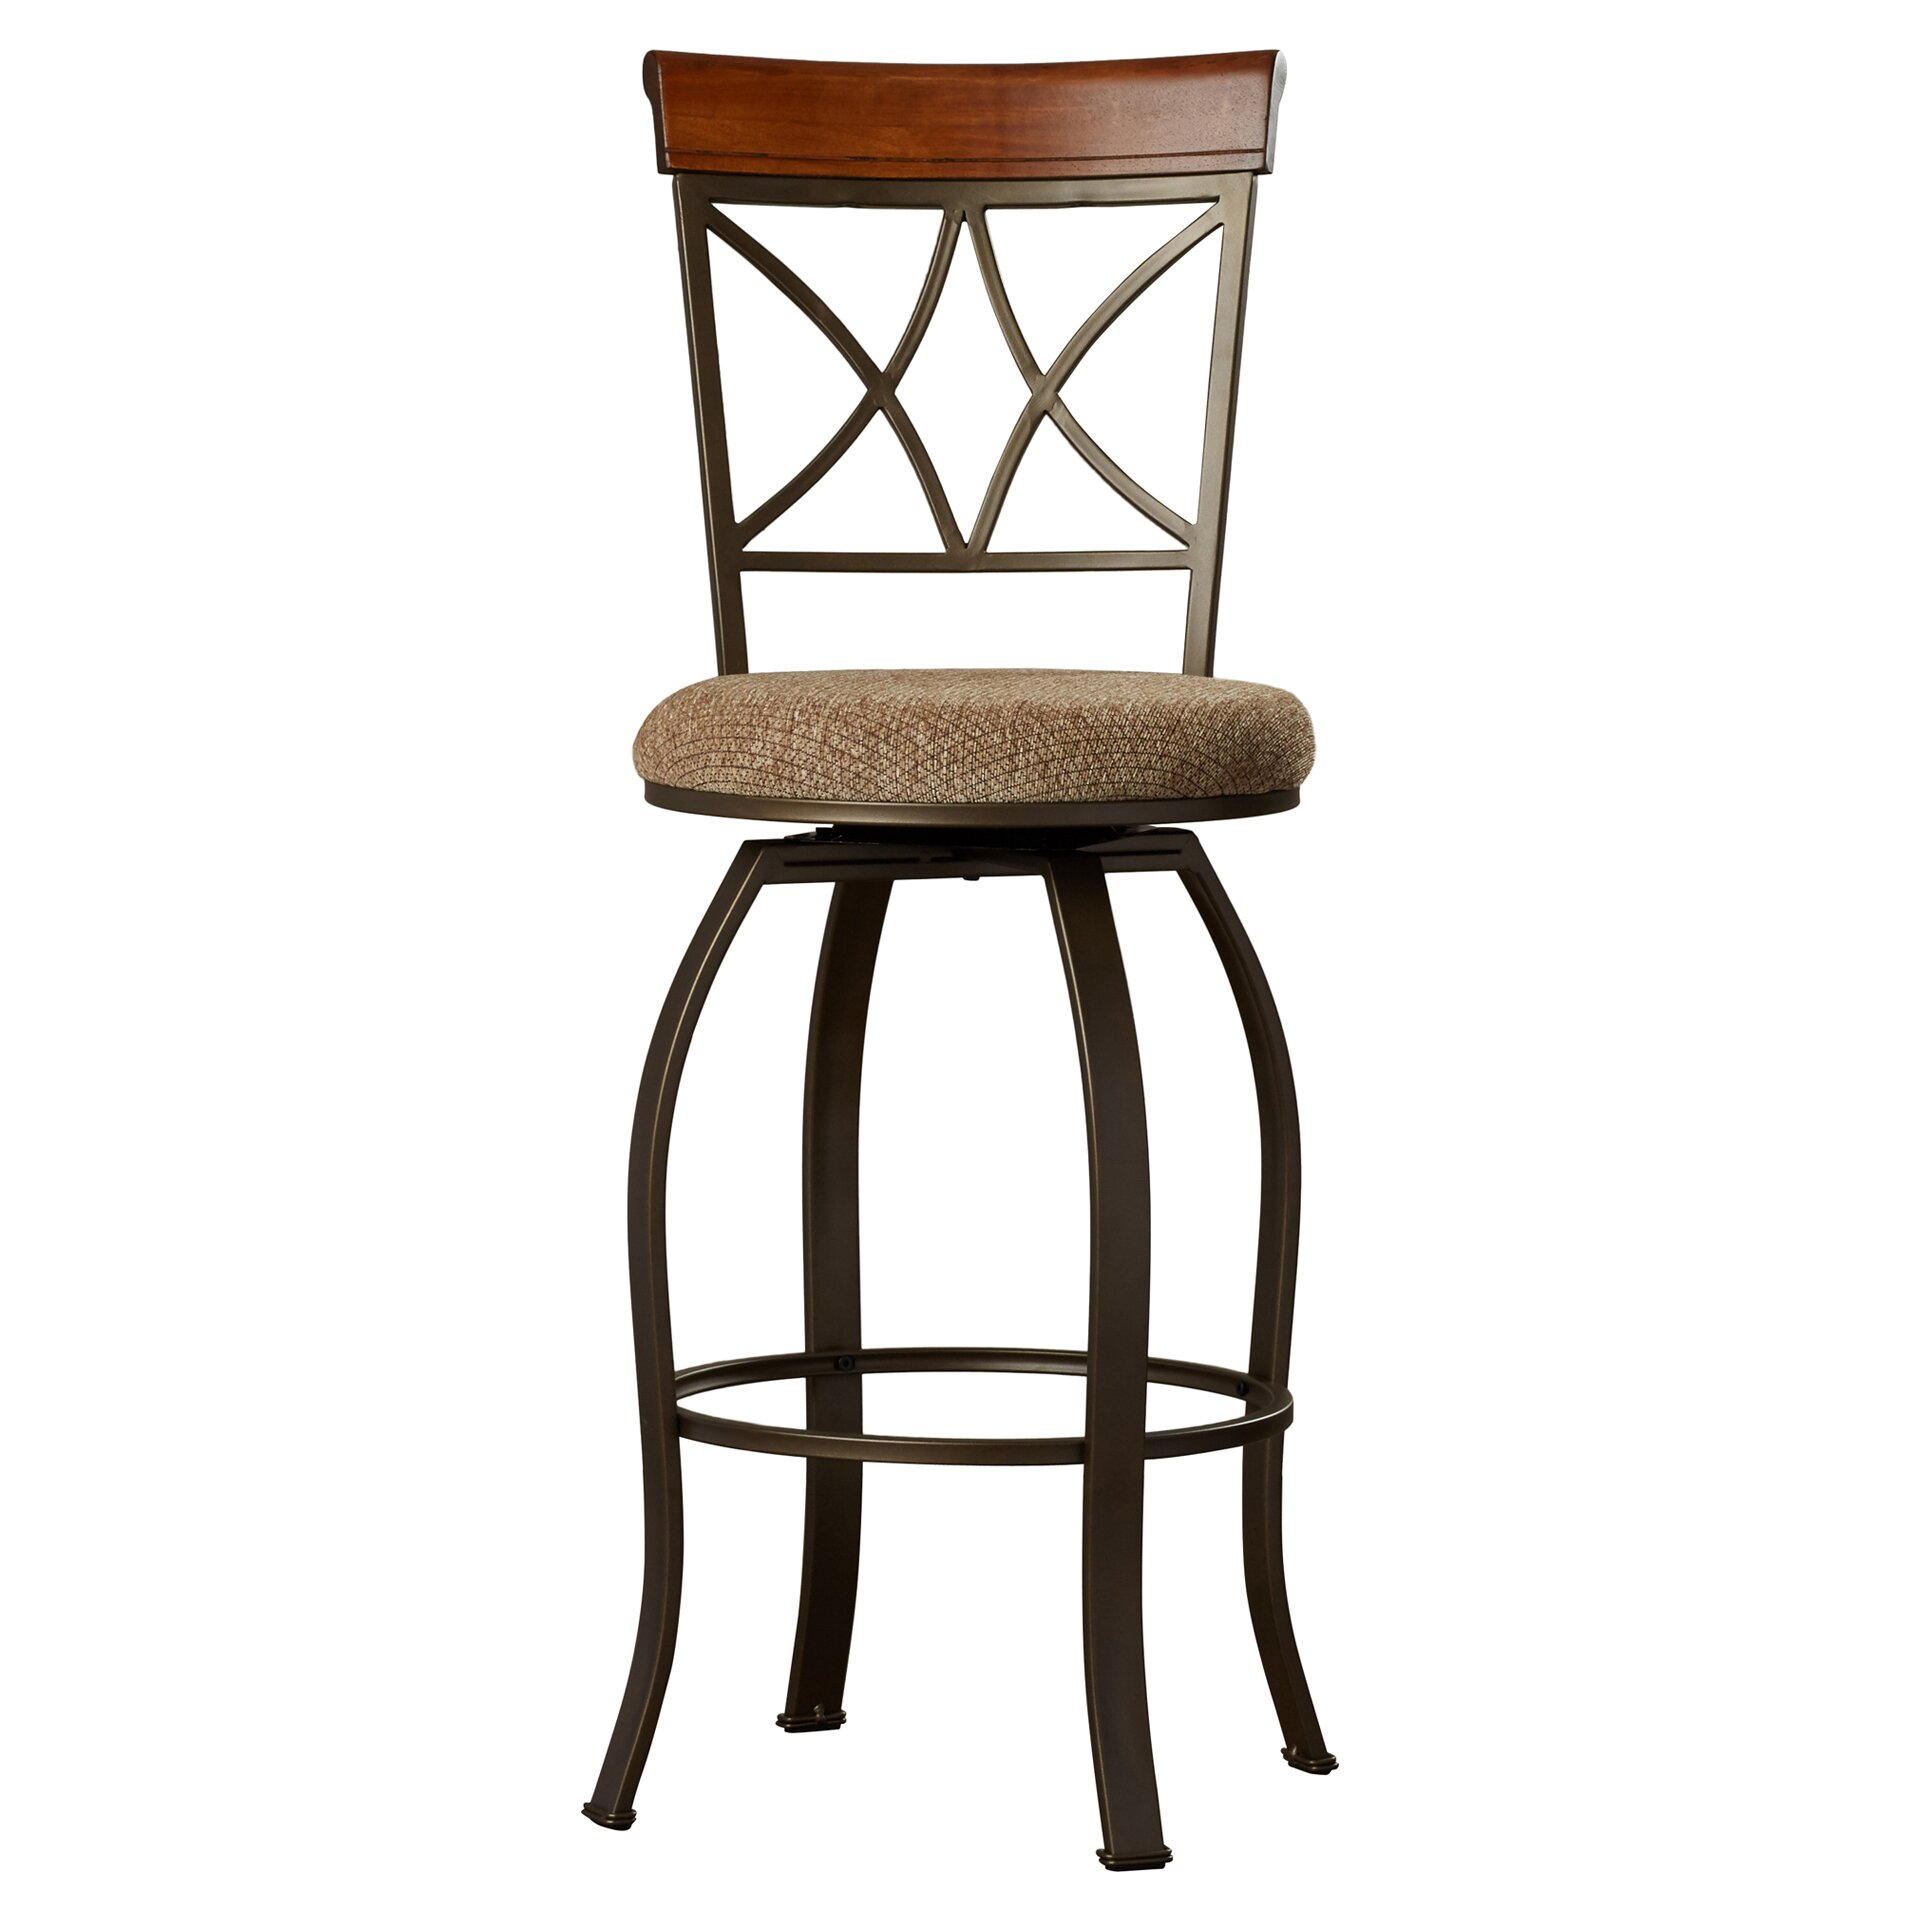 Charlton Home Follmer 29quot Swivel Bar Stool with Cushion  : Charlton Home25C225AE Follmer 29 Swivel Bar Stool with Cushion from www.wayfair.com size 1920 x 1920 jpeg 235kB